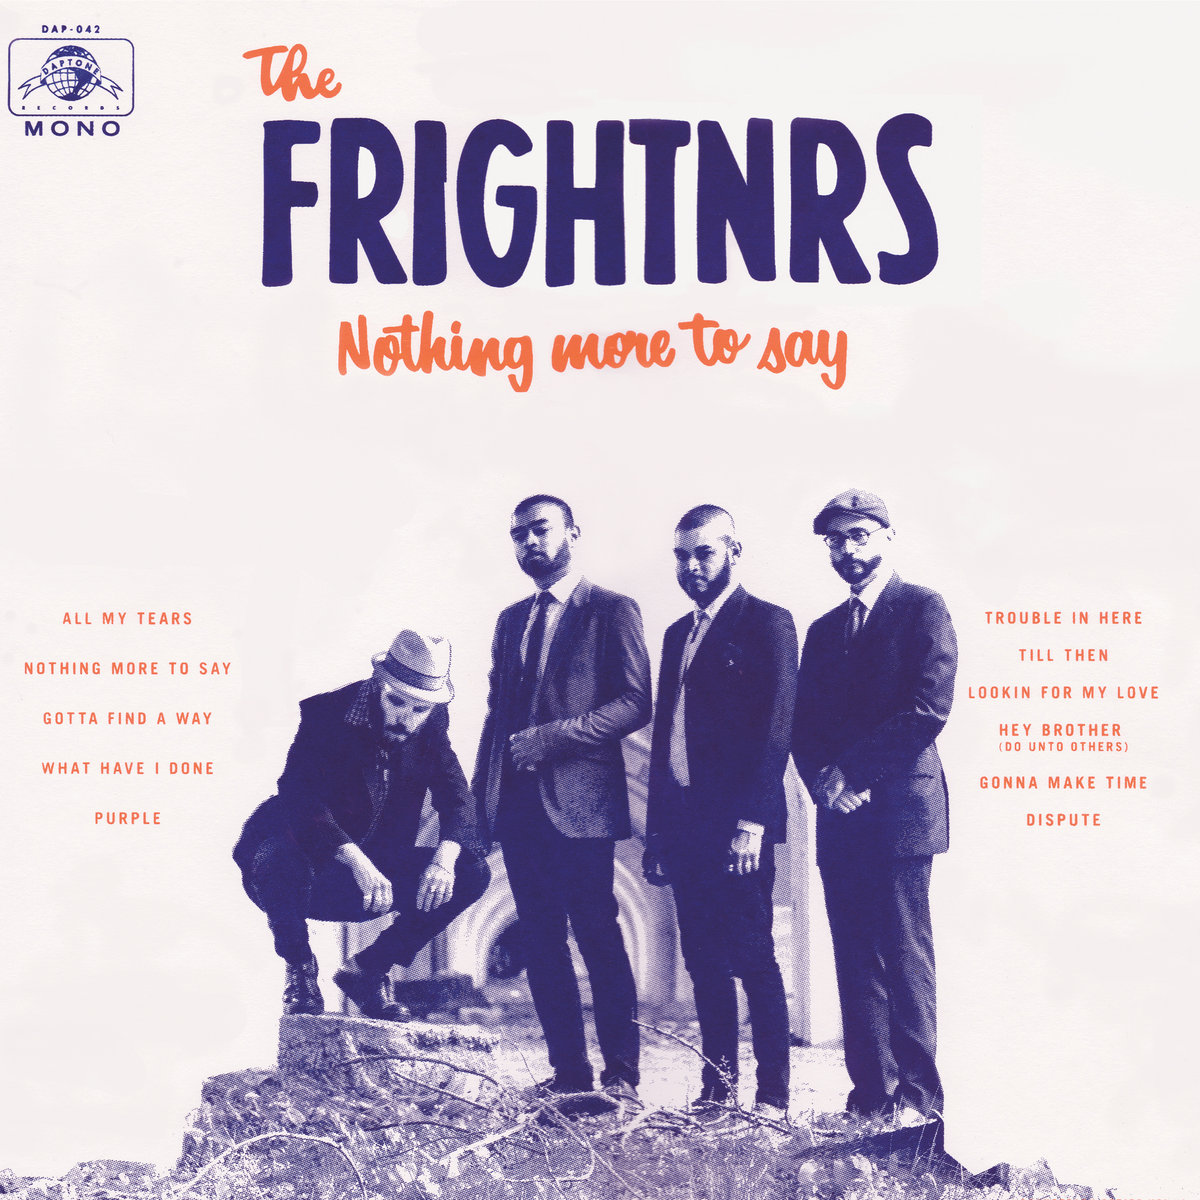 THE FRIGHTNRS : NOTHING MORE TO SAY